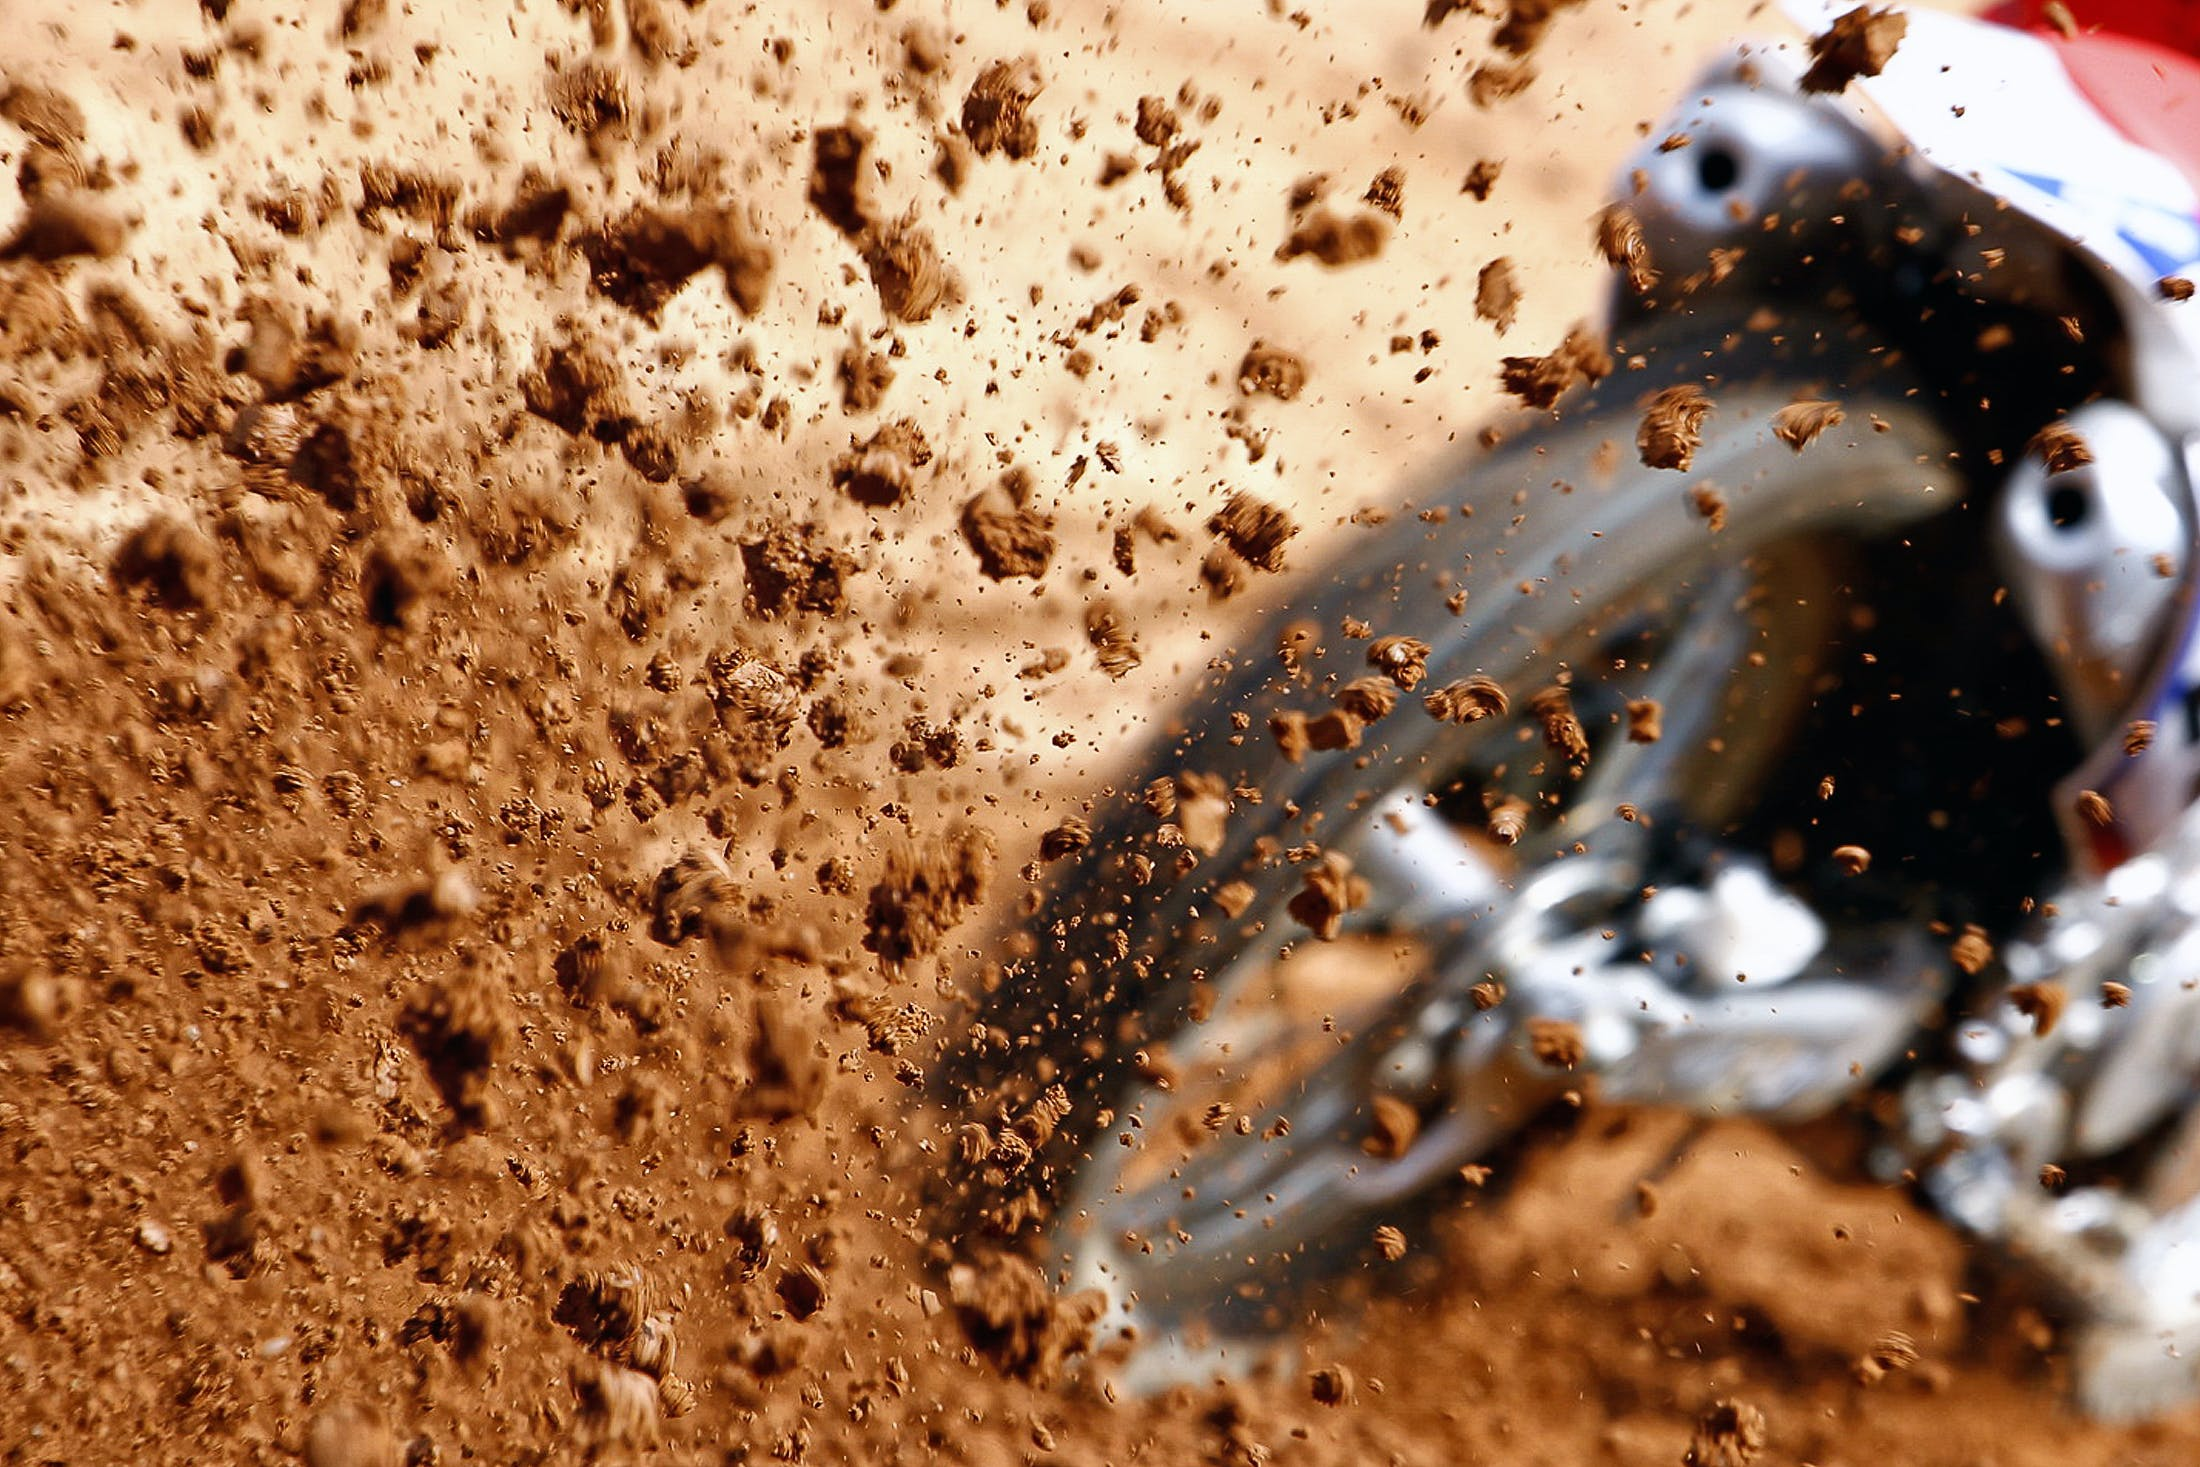 Photo of Motocross Dirt Bike